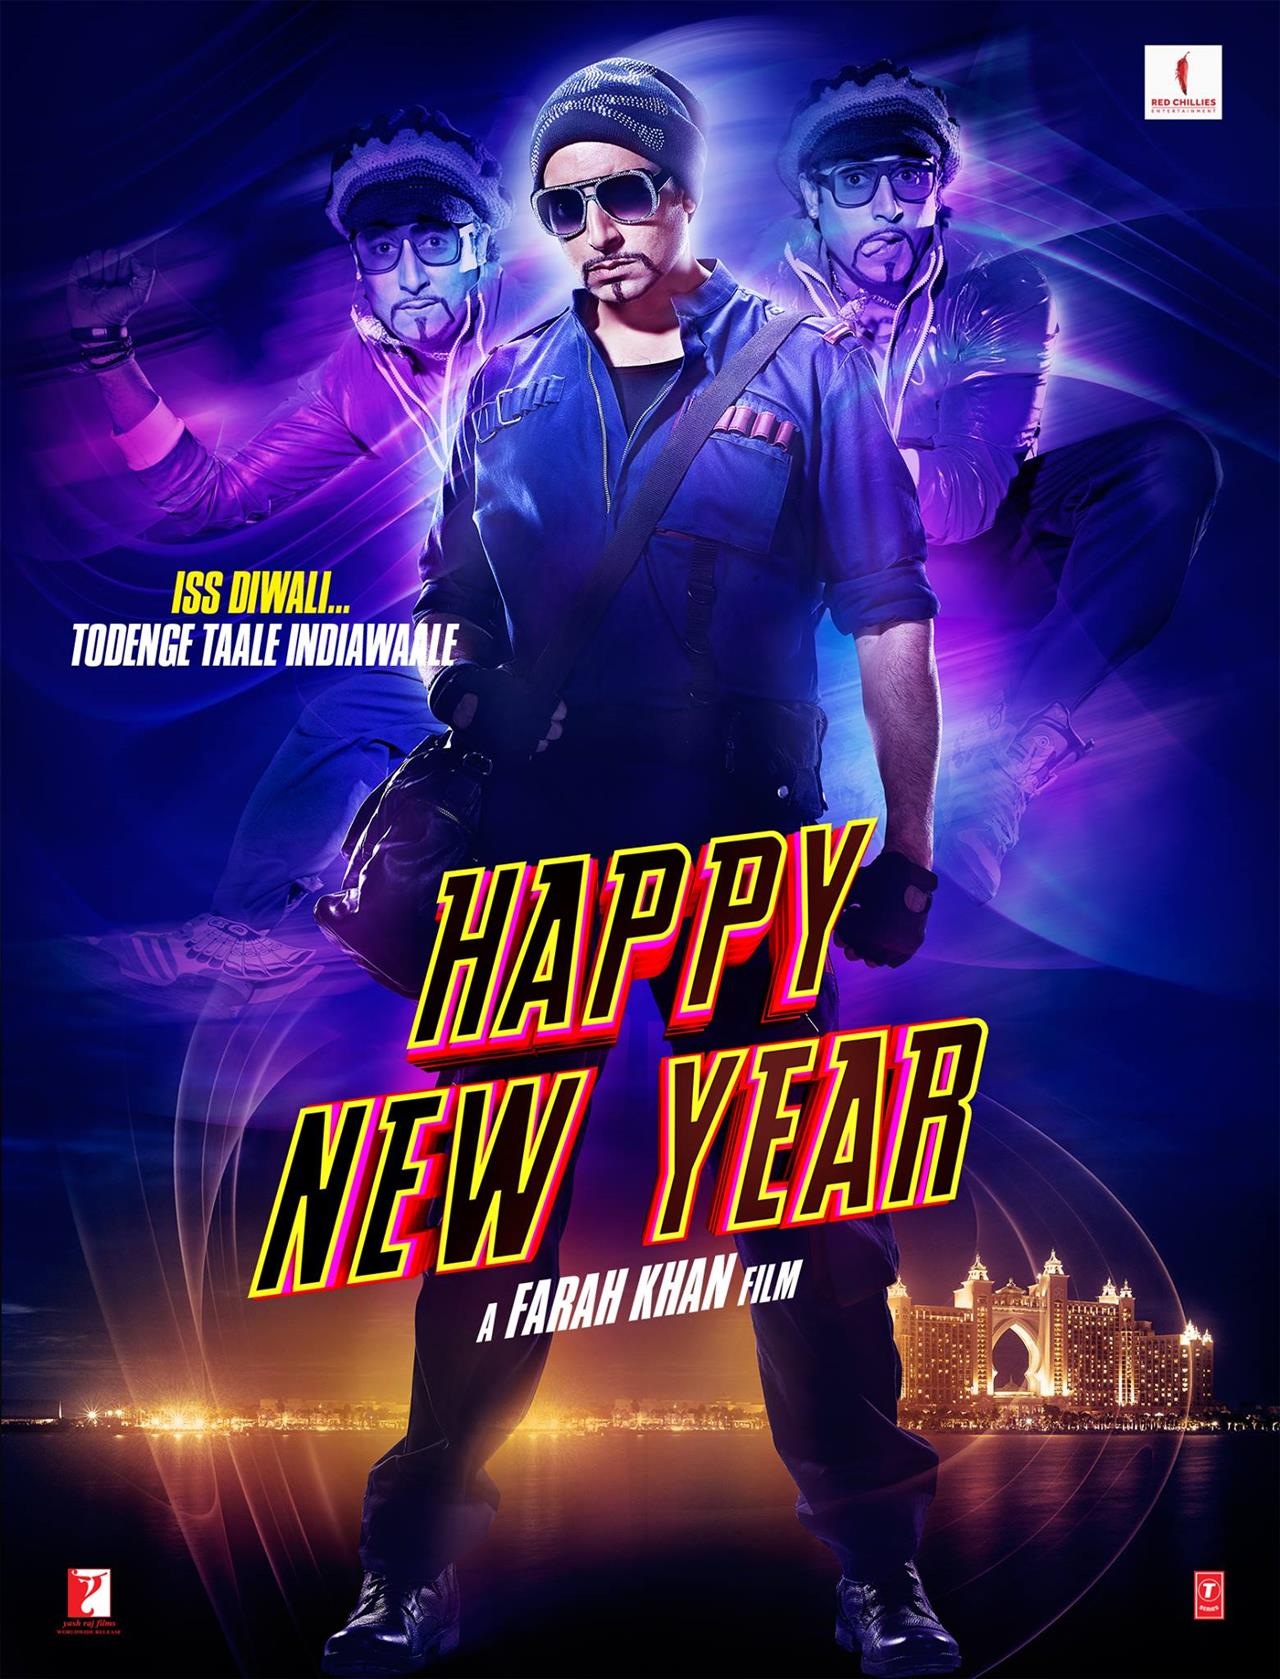 wallpapers pictures of happy new year movie virtual university of pakistan